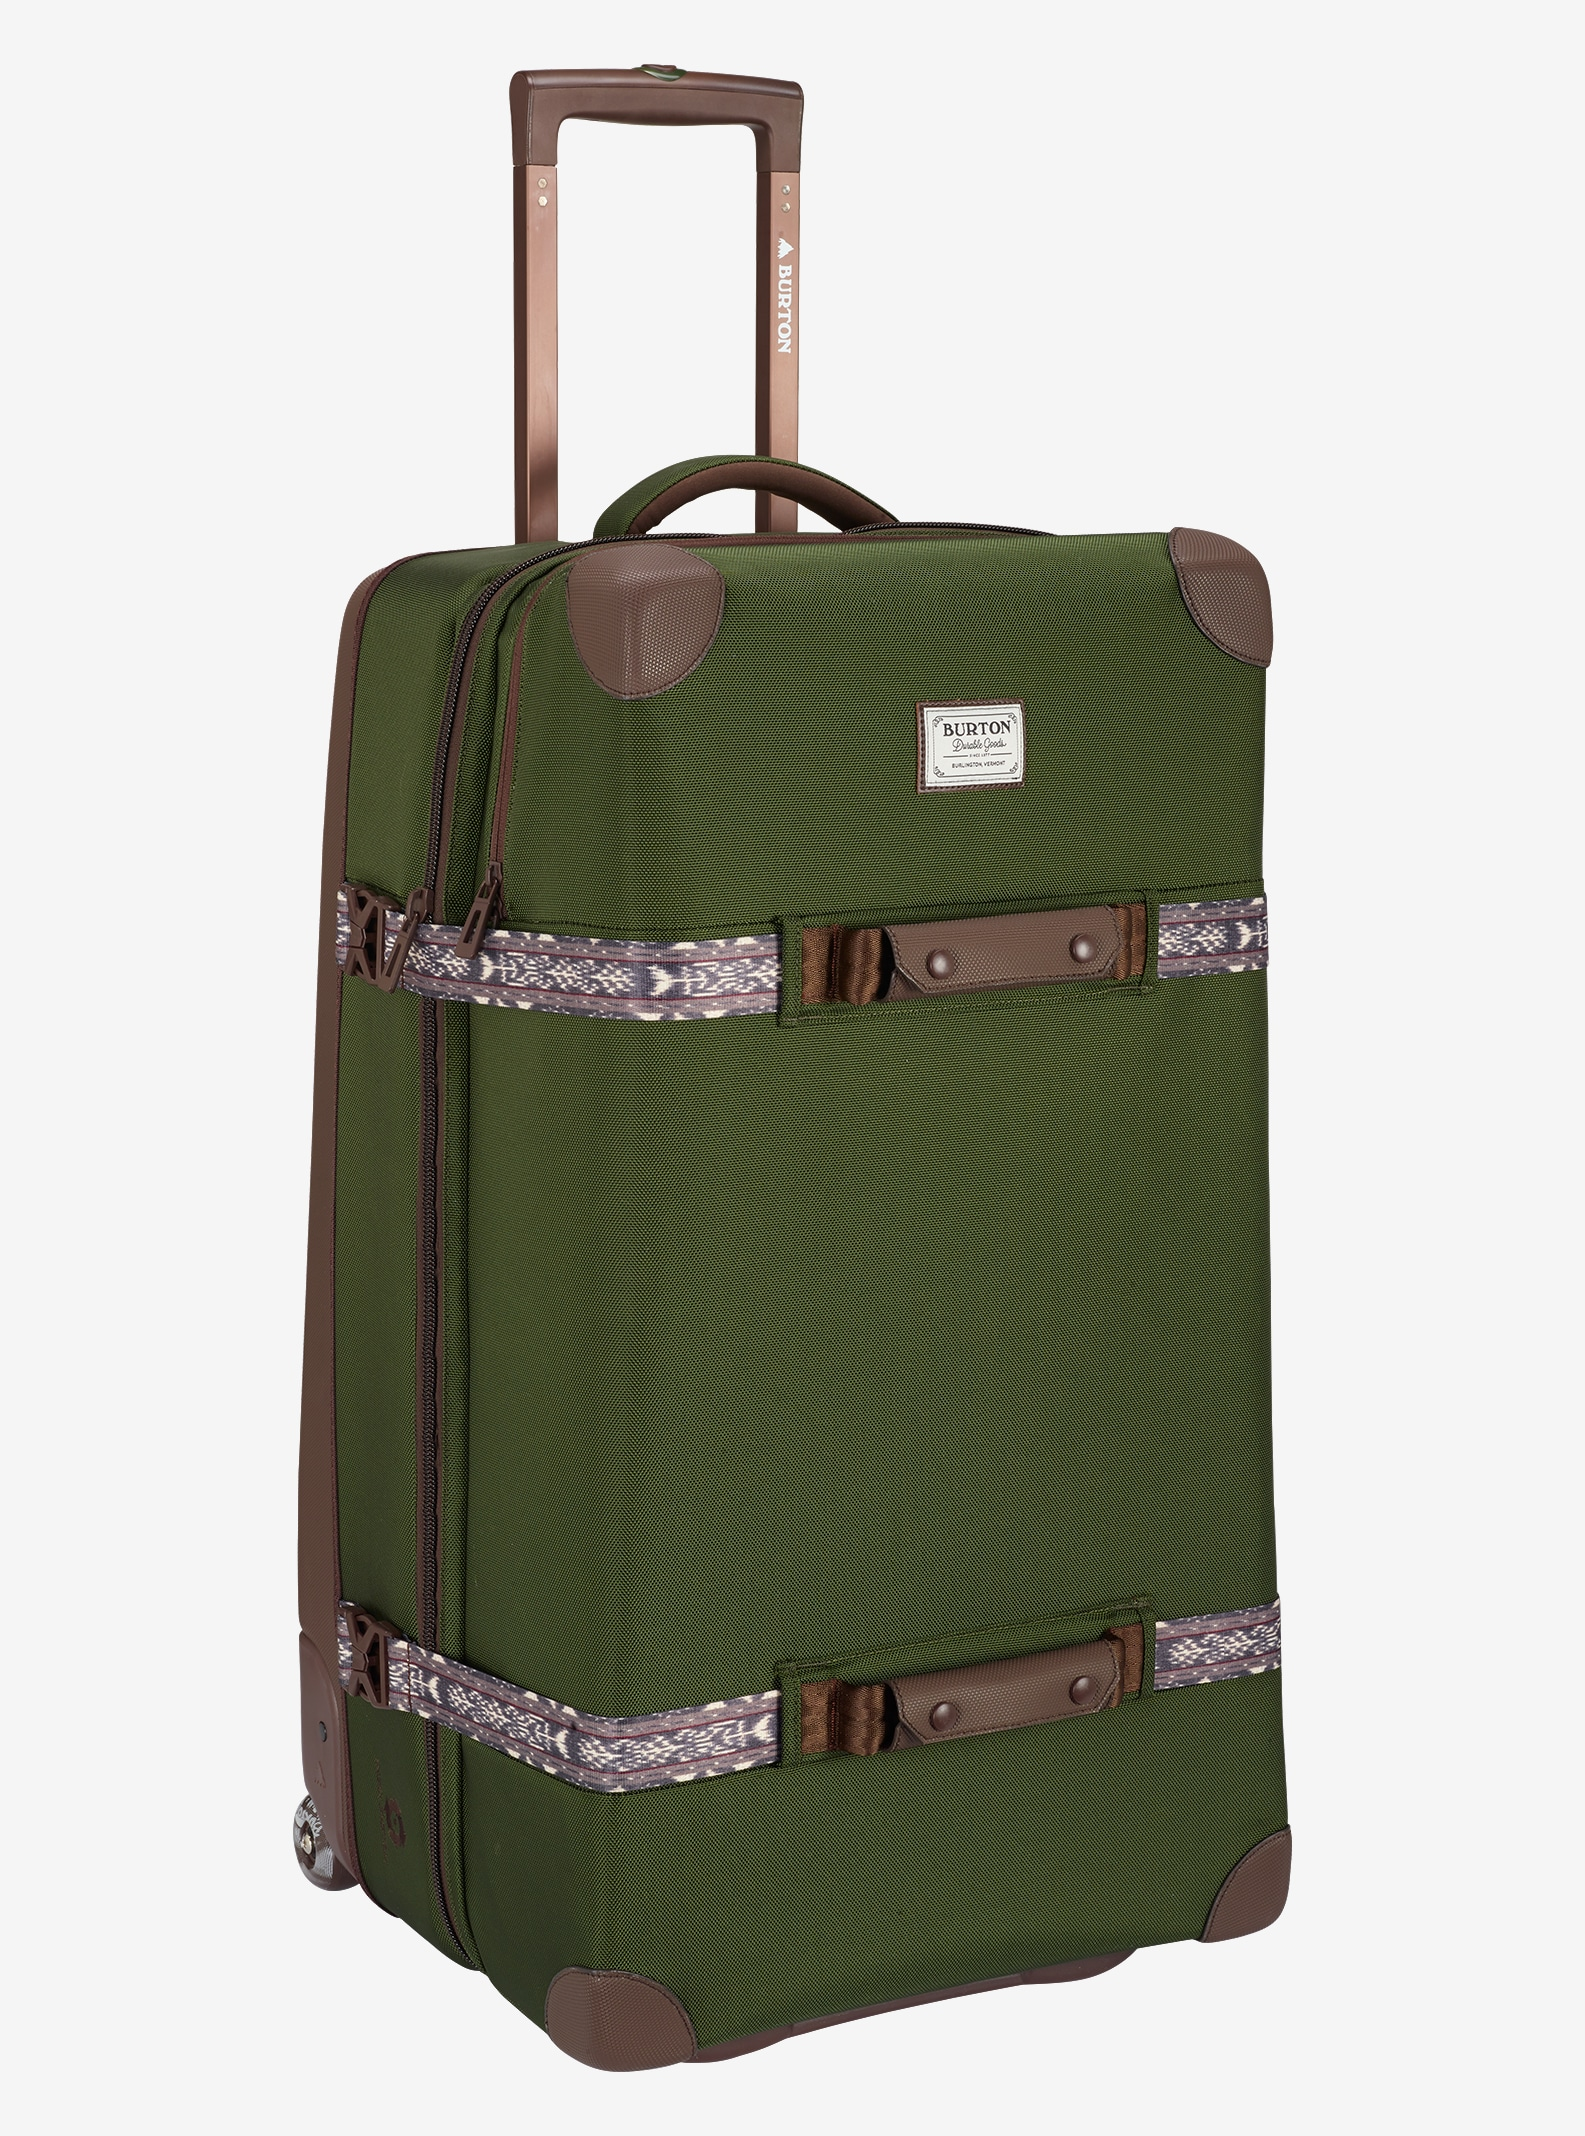 Burton Wheelie Sub Travel Bag shown in Rifle Green